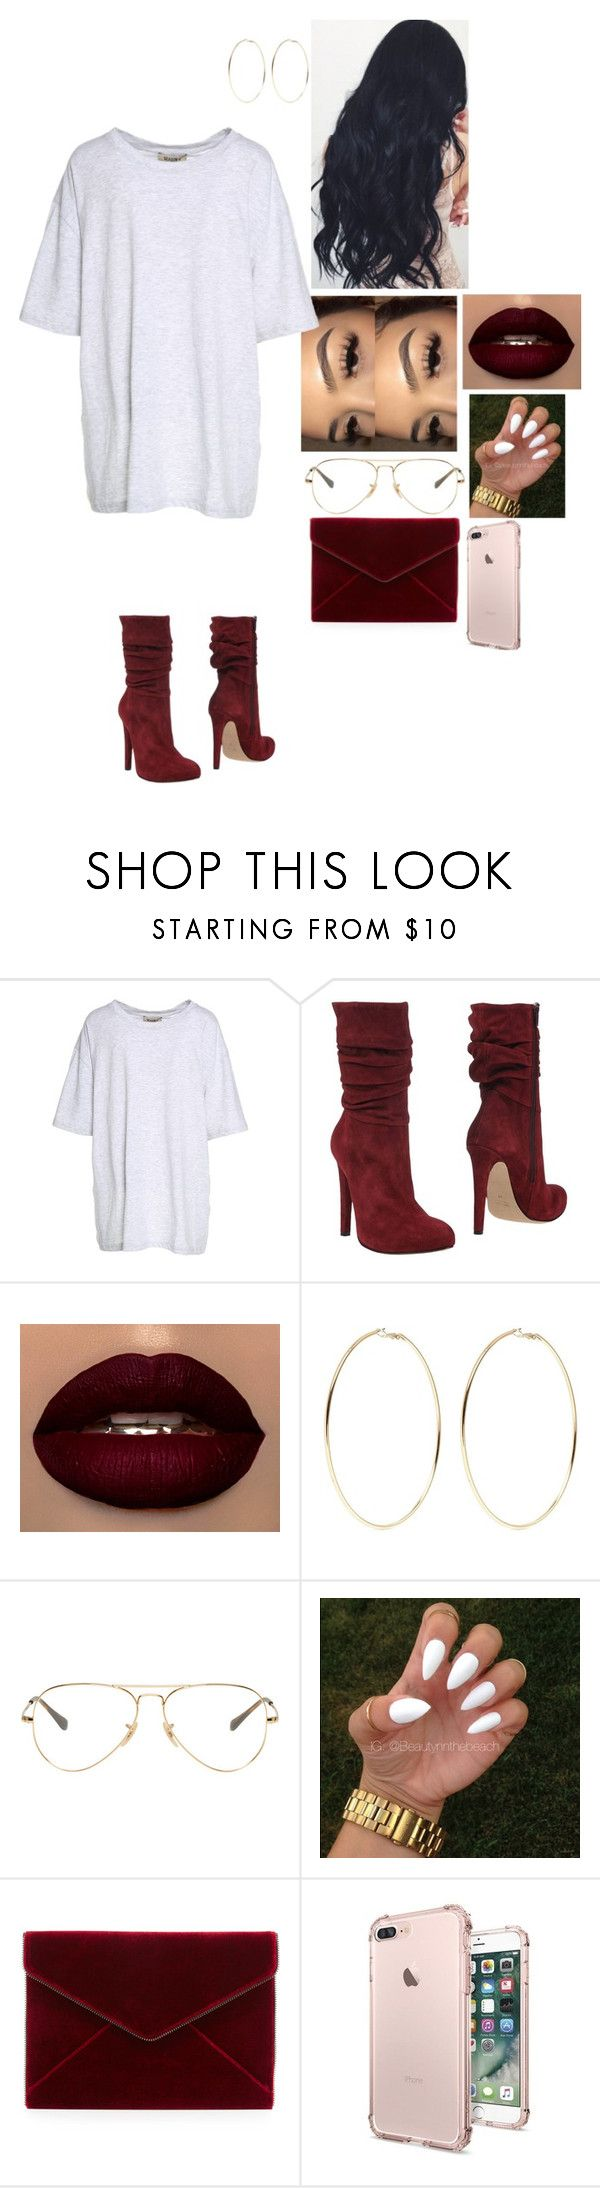 """""""Untitled #1072"""" by medinea ❤ liked on Polyvore featuring Yeezy by Kanye West, Jolie By Edward Spiers, Kenneth Jay Lane, Ray-Ban and Rebecca Minkoff"""